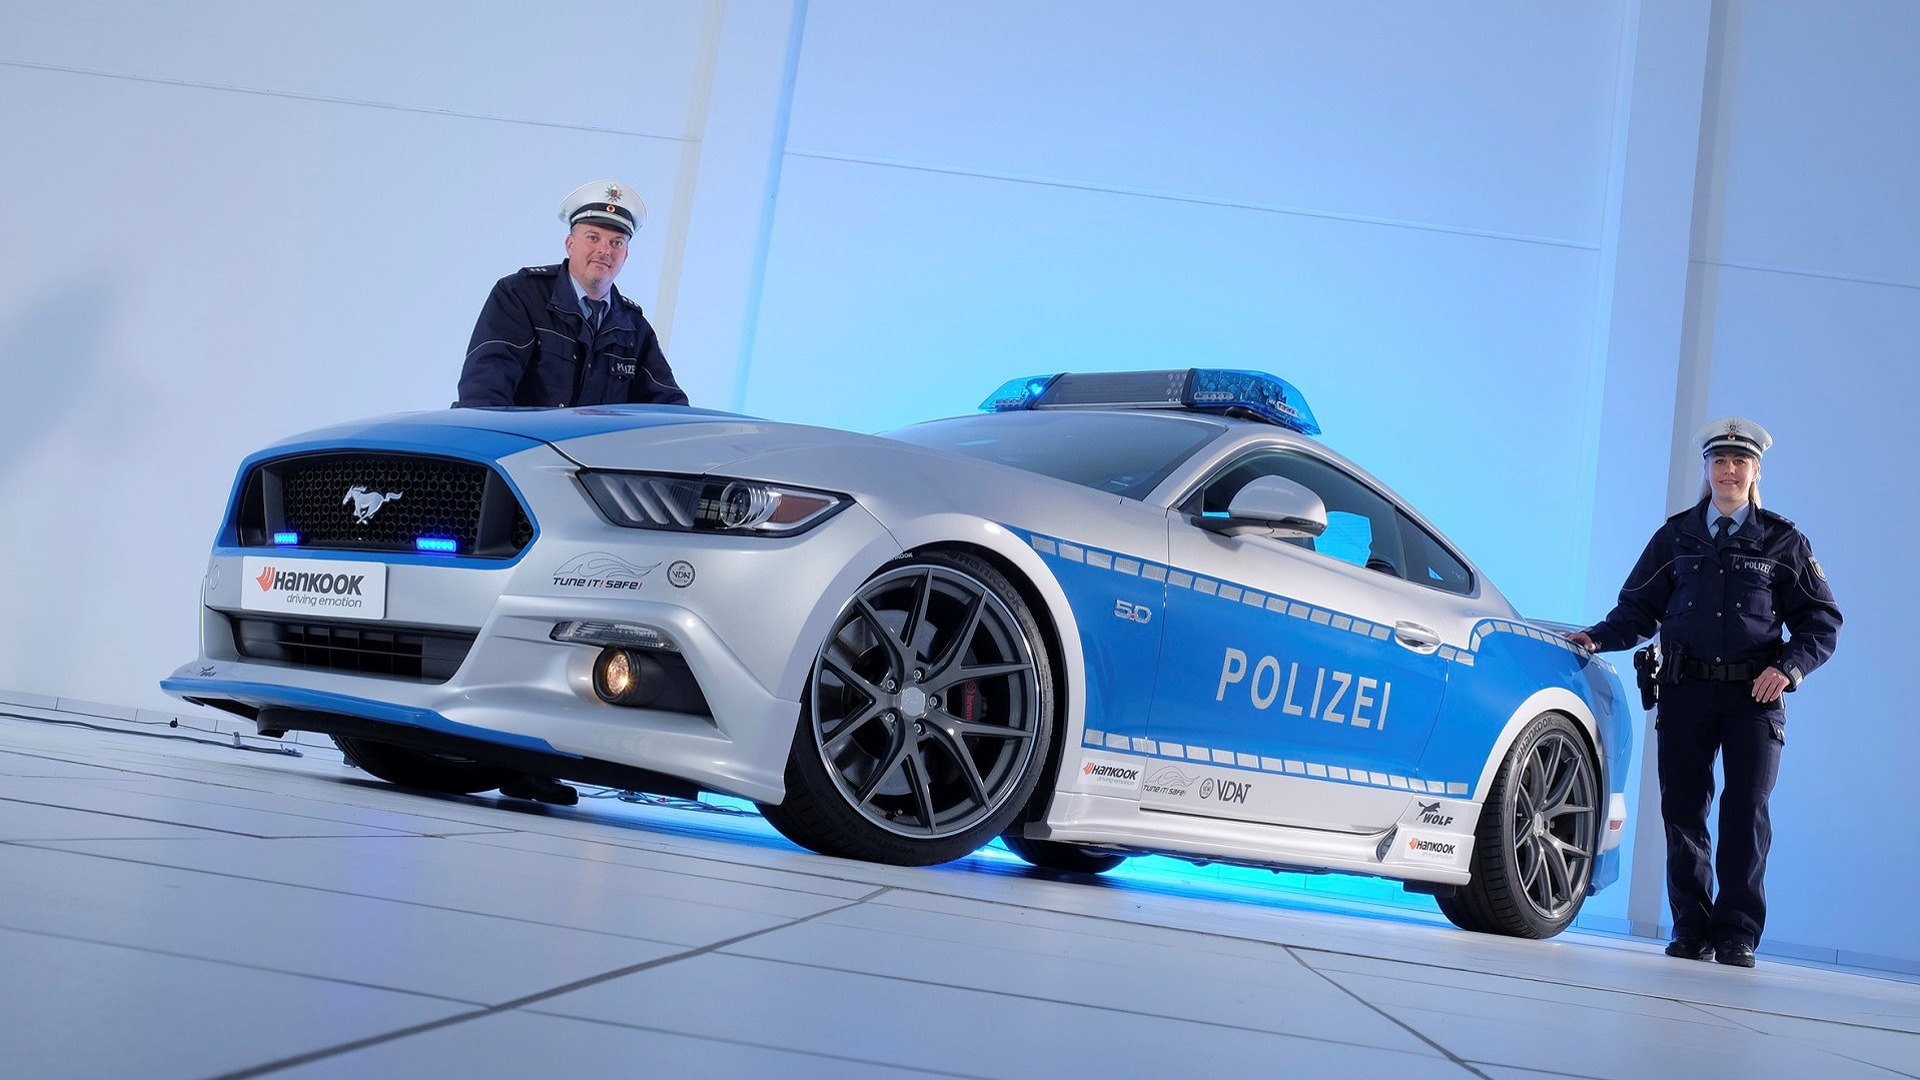 Photo of Alman Polisi'nin tercihi Ford Mustang oldu